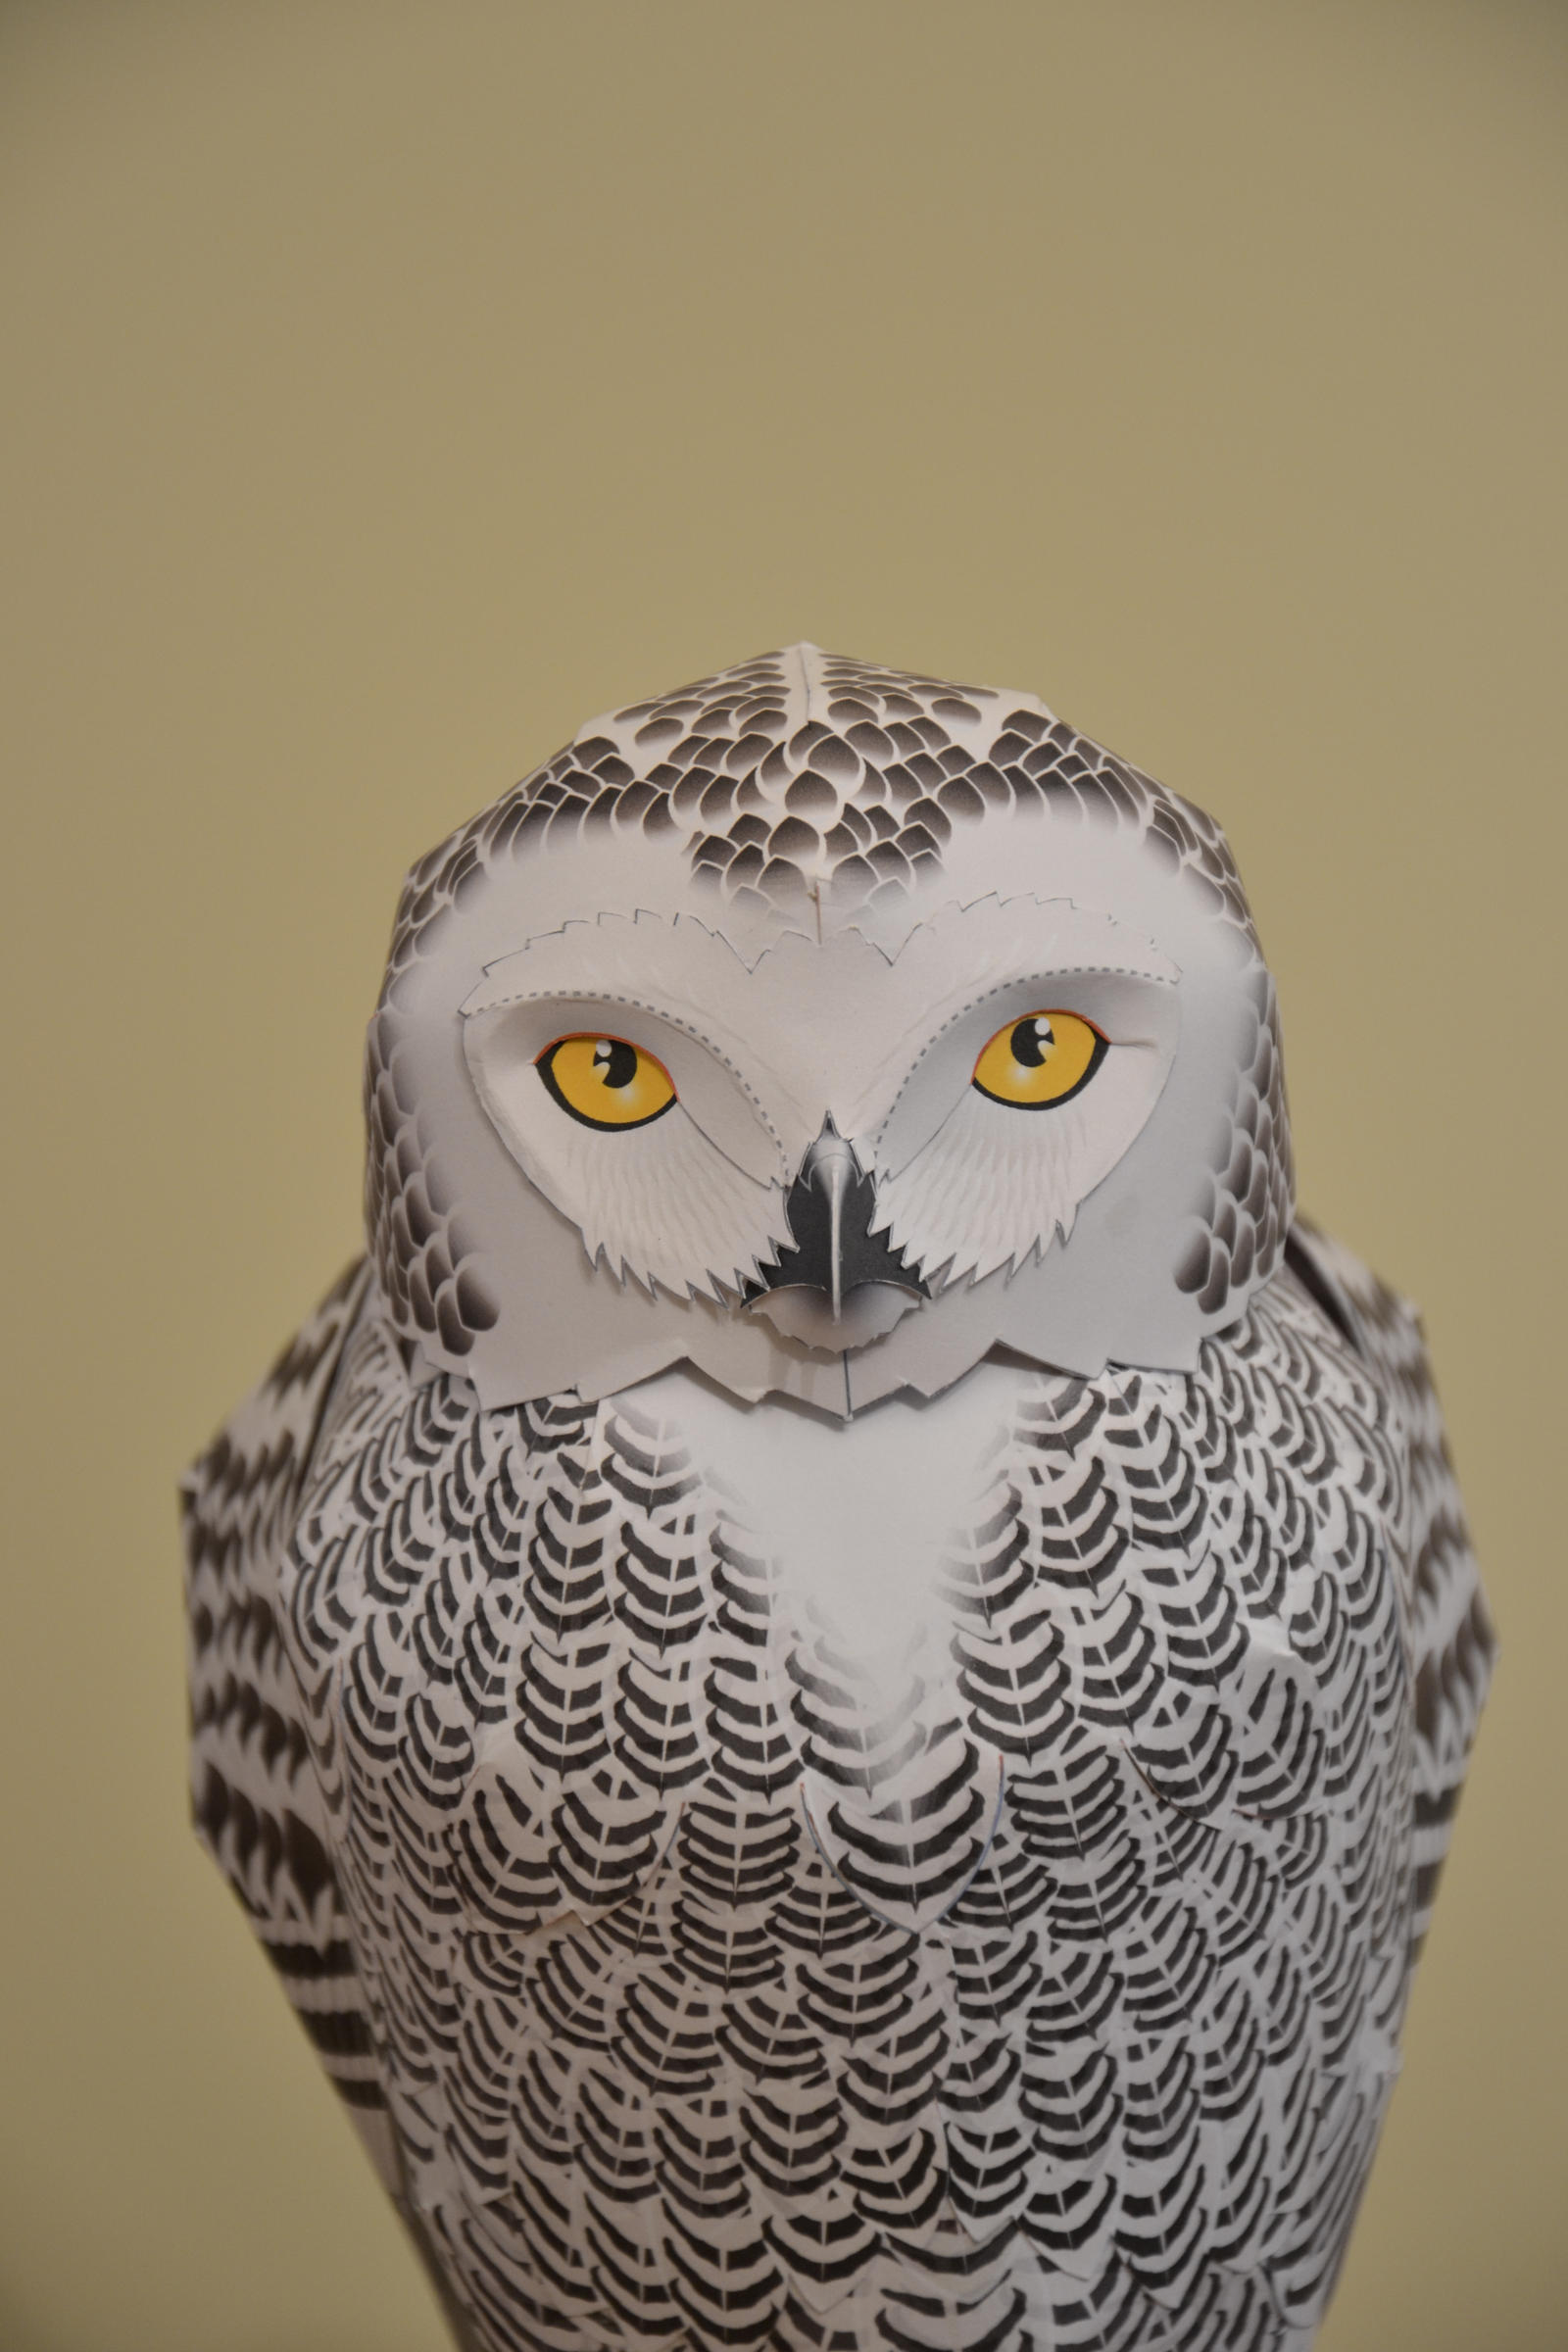 Canon creative park snowy owl by radoslawkamil on deviantart canon creative park snowy owl by radoslawkamil jeuxipadfo Image collections